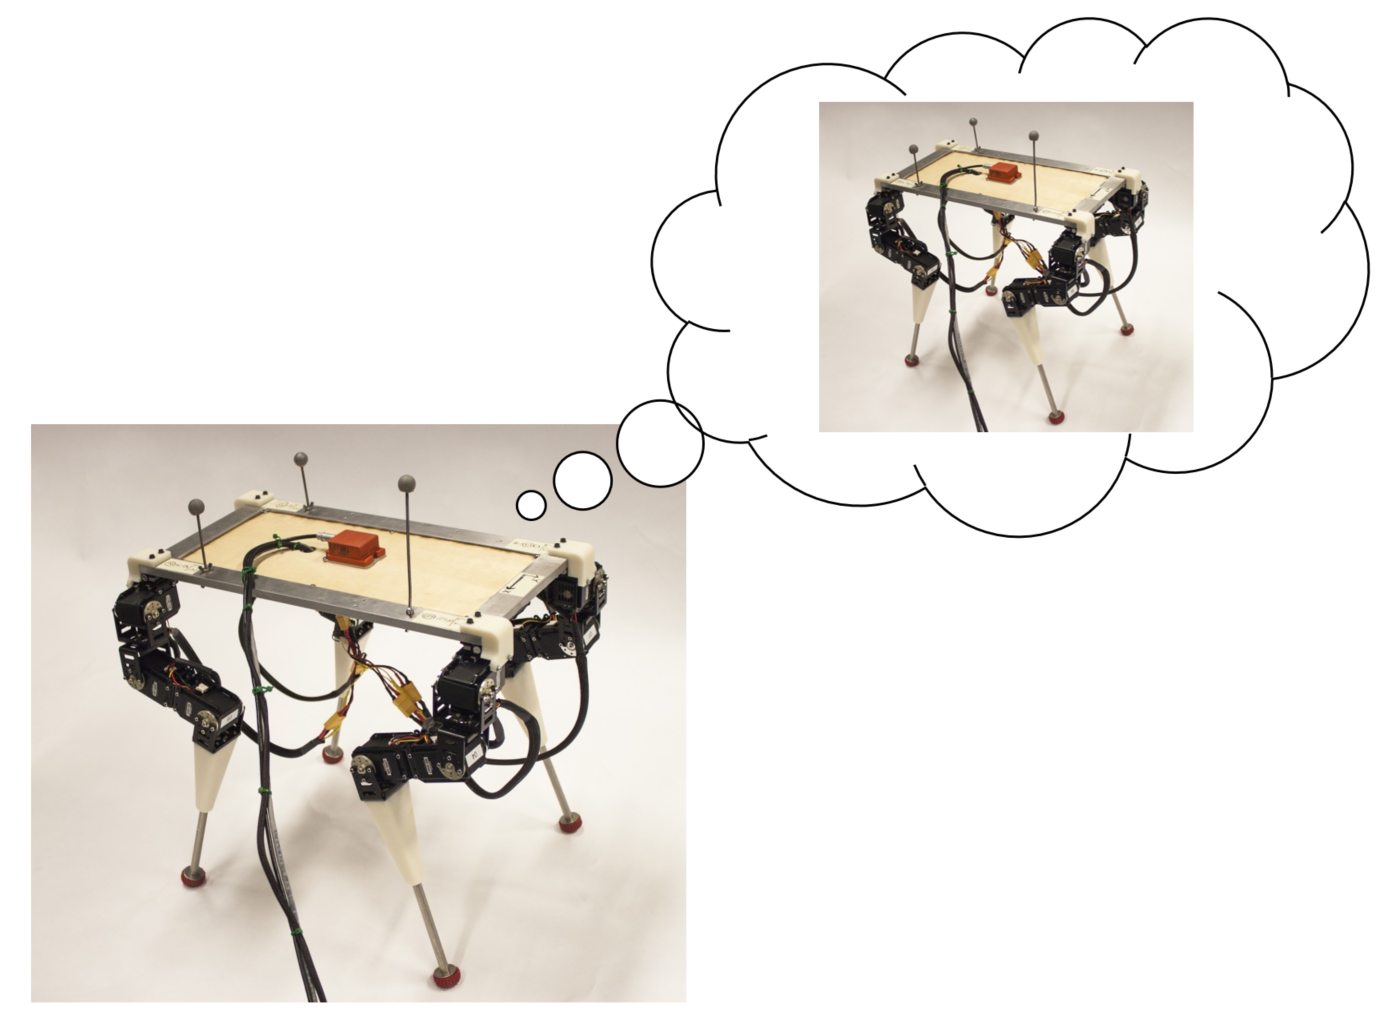 A robot with an internal self-model